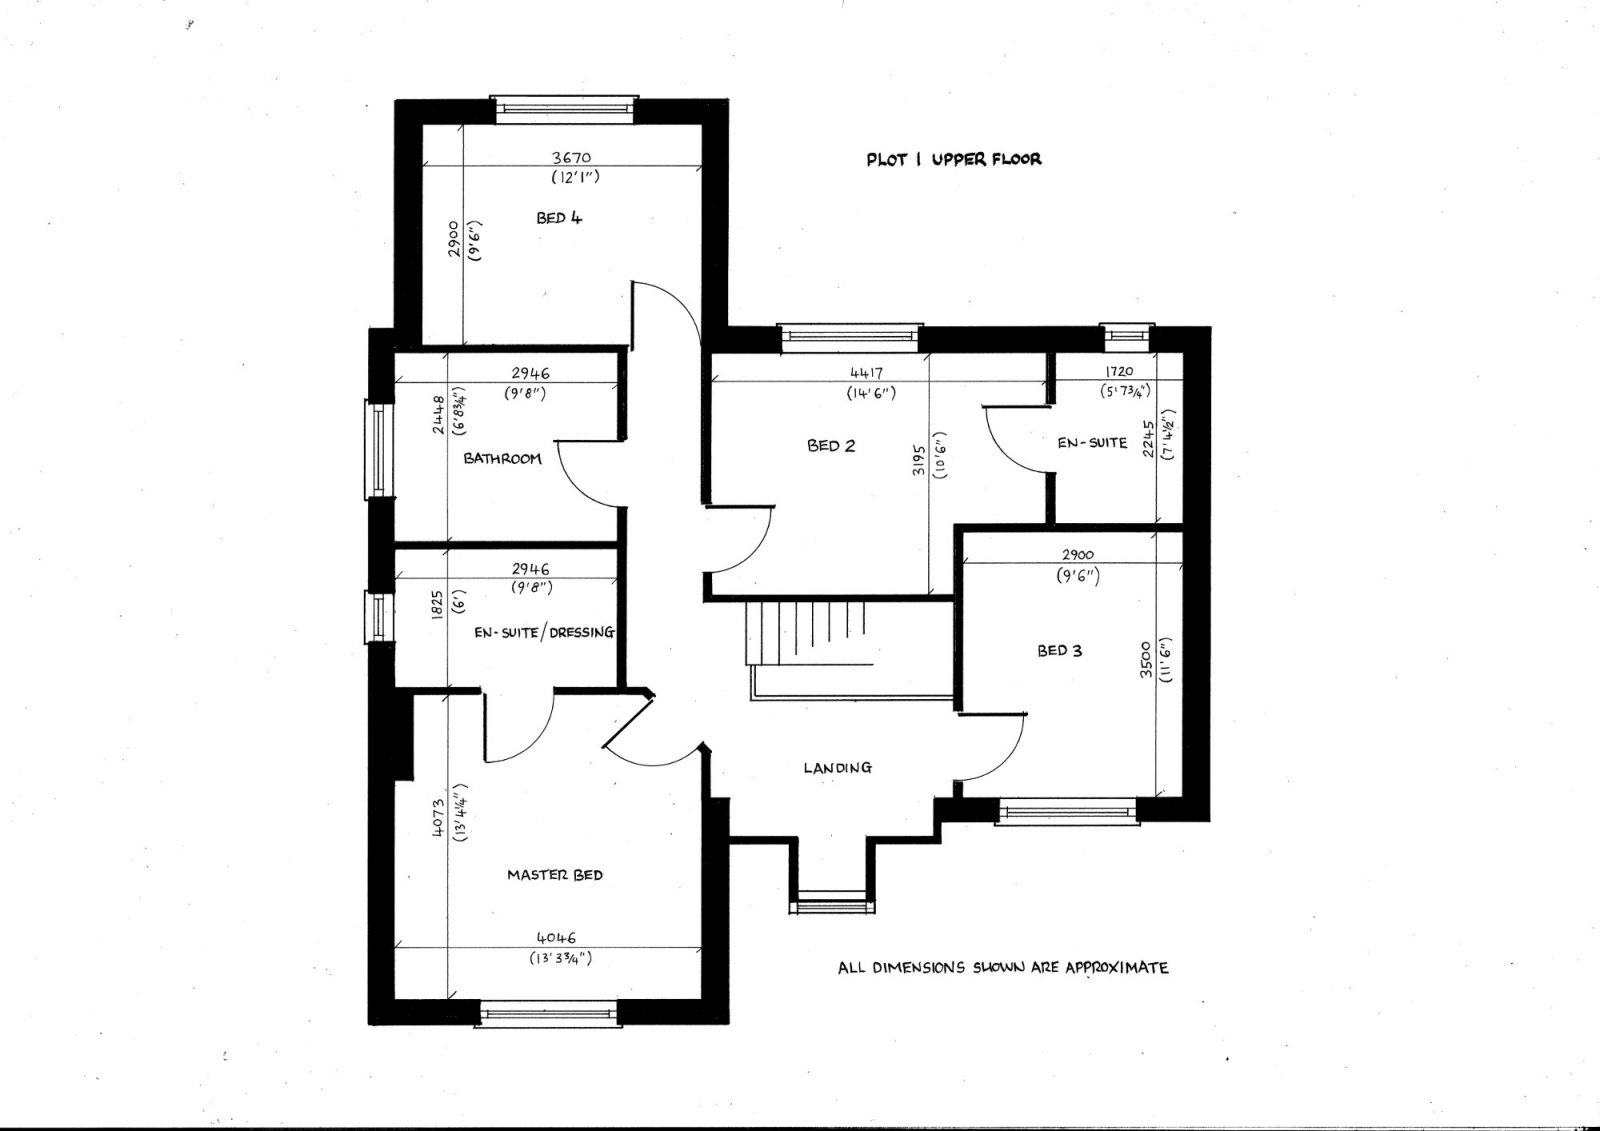 plot-1-upper-floor-plan-reduced